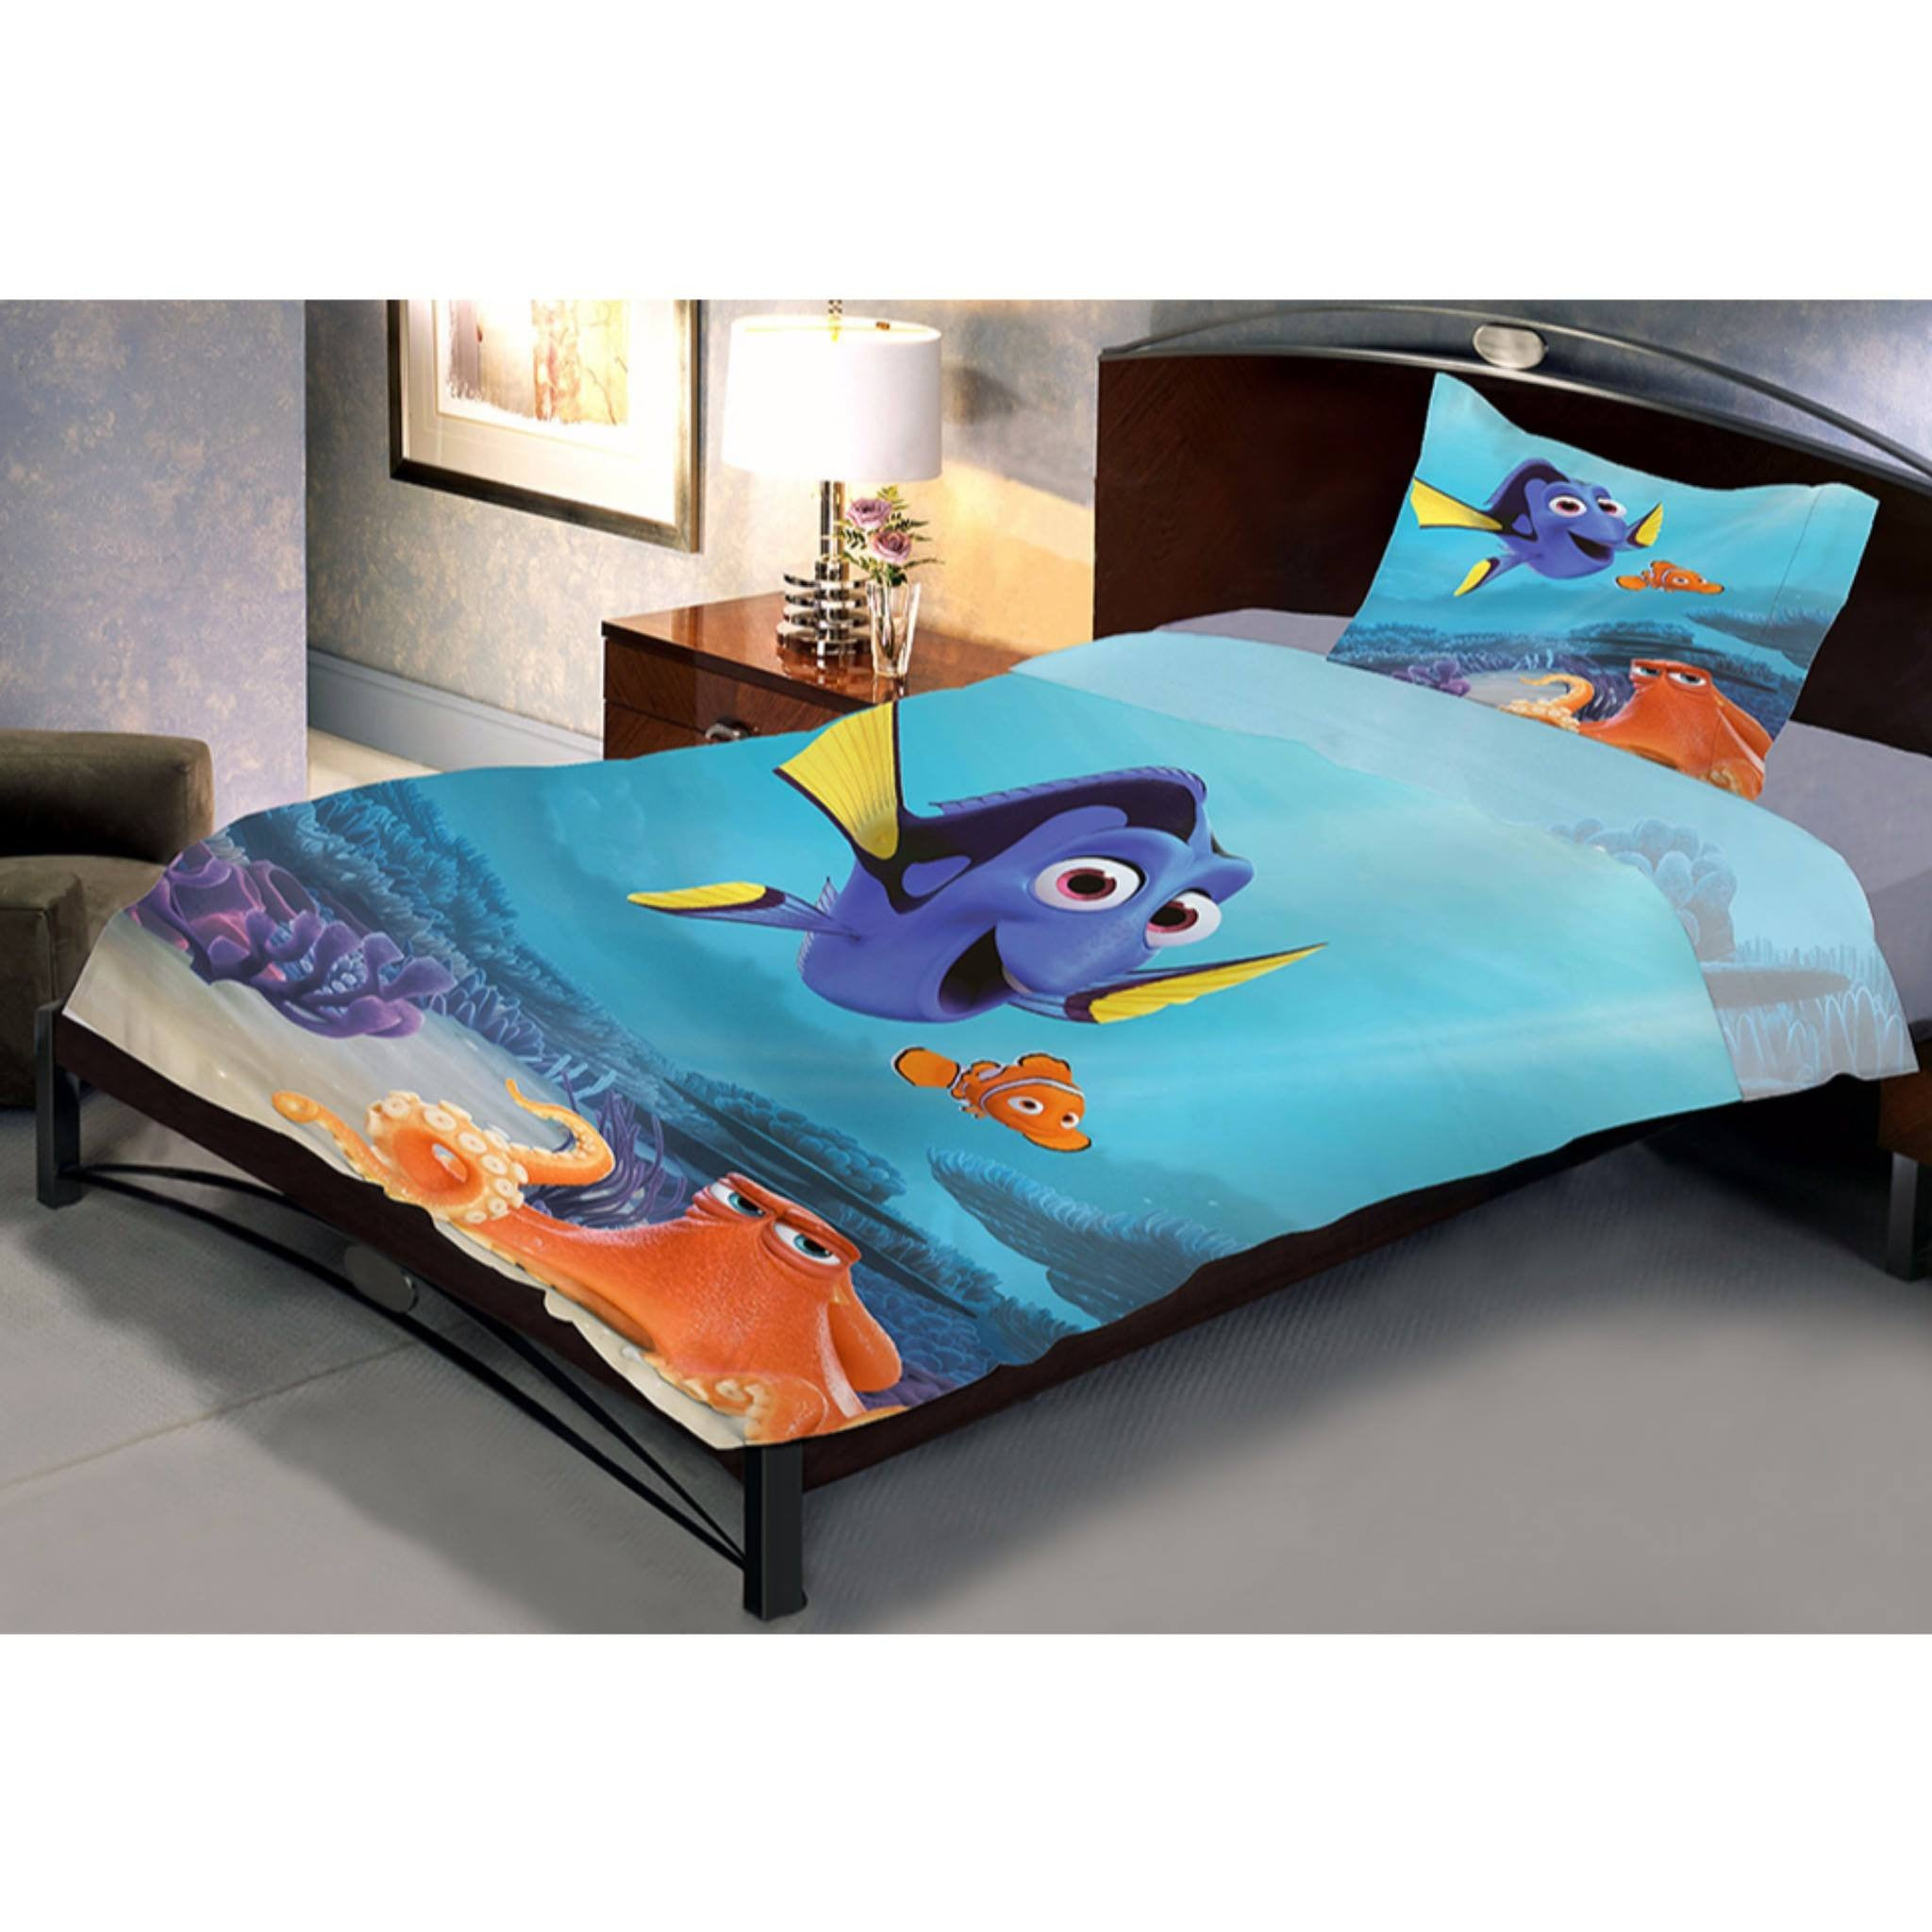 ... Finding Dory Single Bed Sheet And Pillow Cover   Über Urban Bedsheet